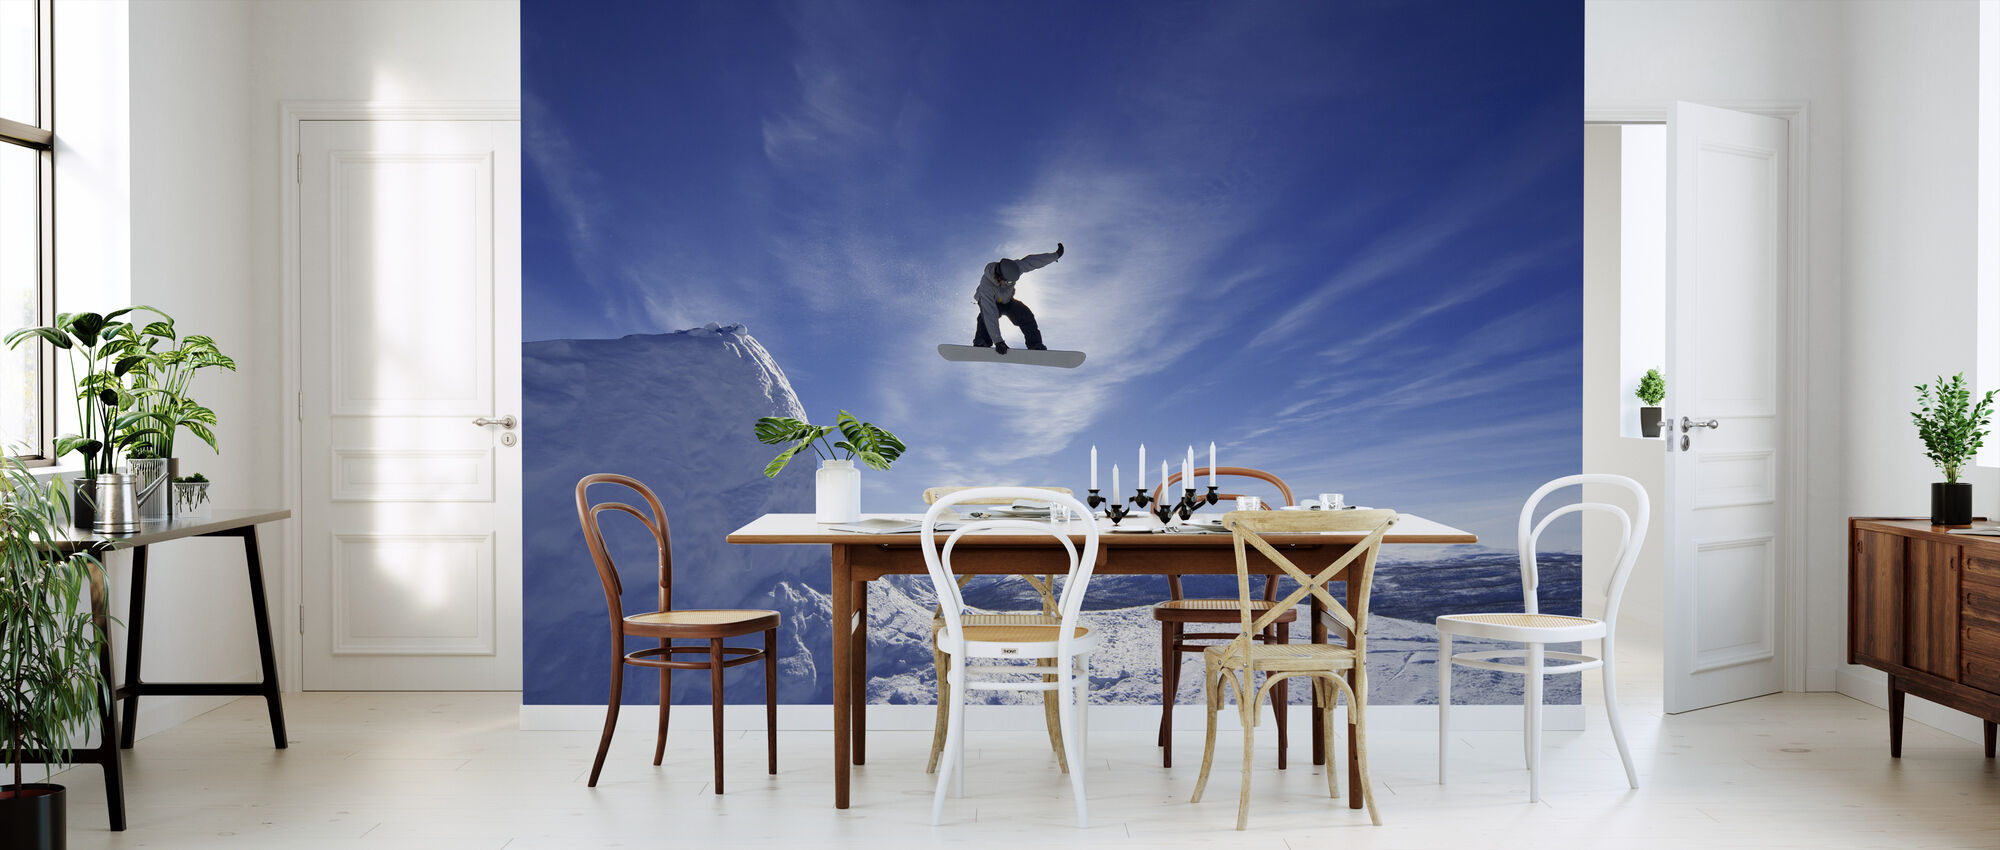 Snowboard Big Air Jump - Wallpaper - Kitchen